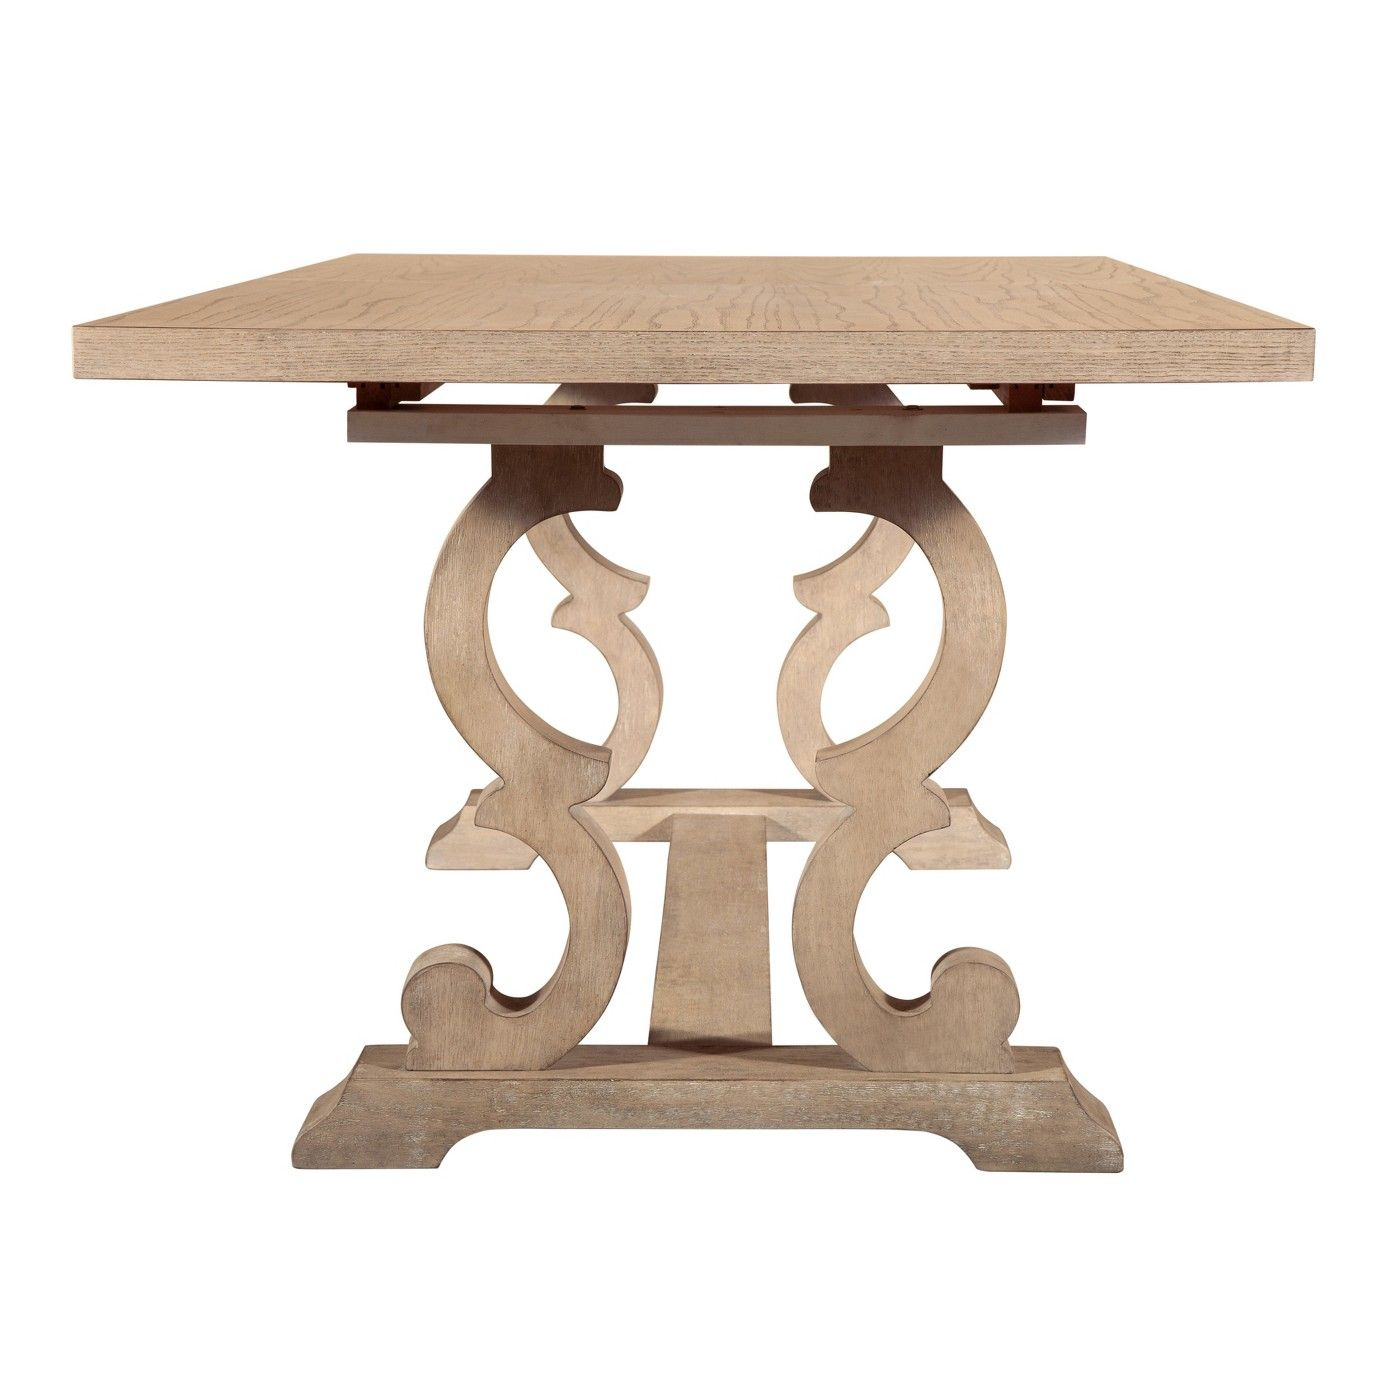 Elmhurst Trestle Dining Table With Curved Legs Weathered Oak Finch Dining Table Trestle Dining Tables Weathered Oak